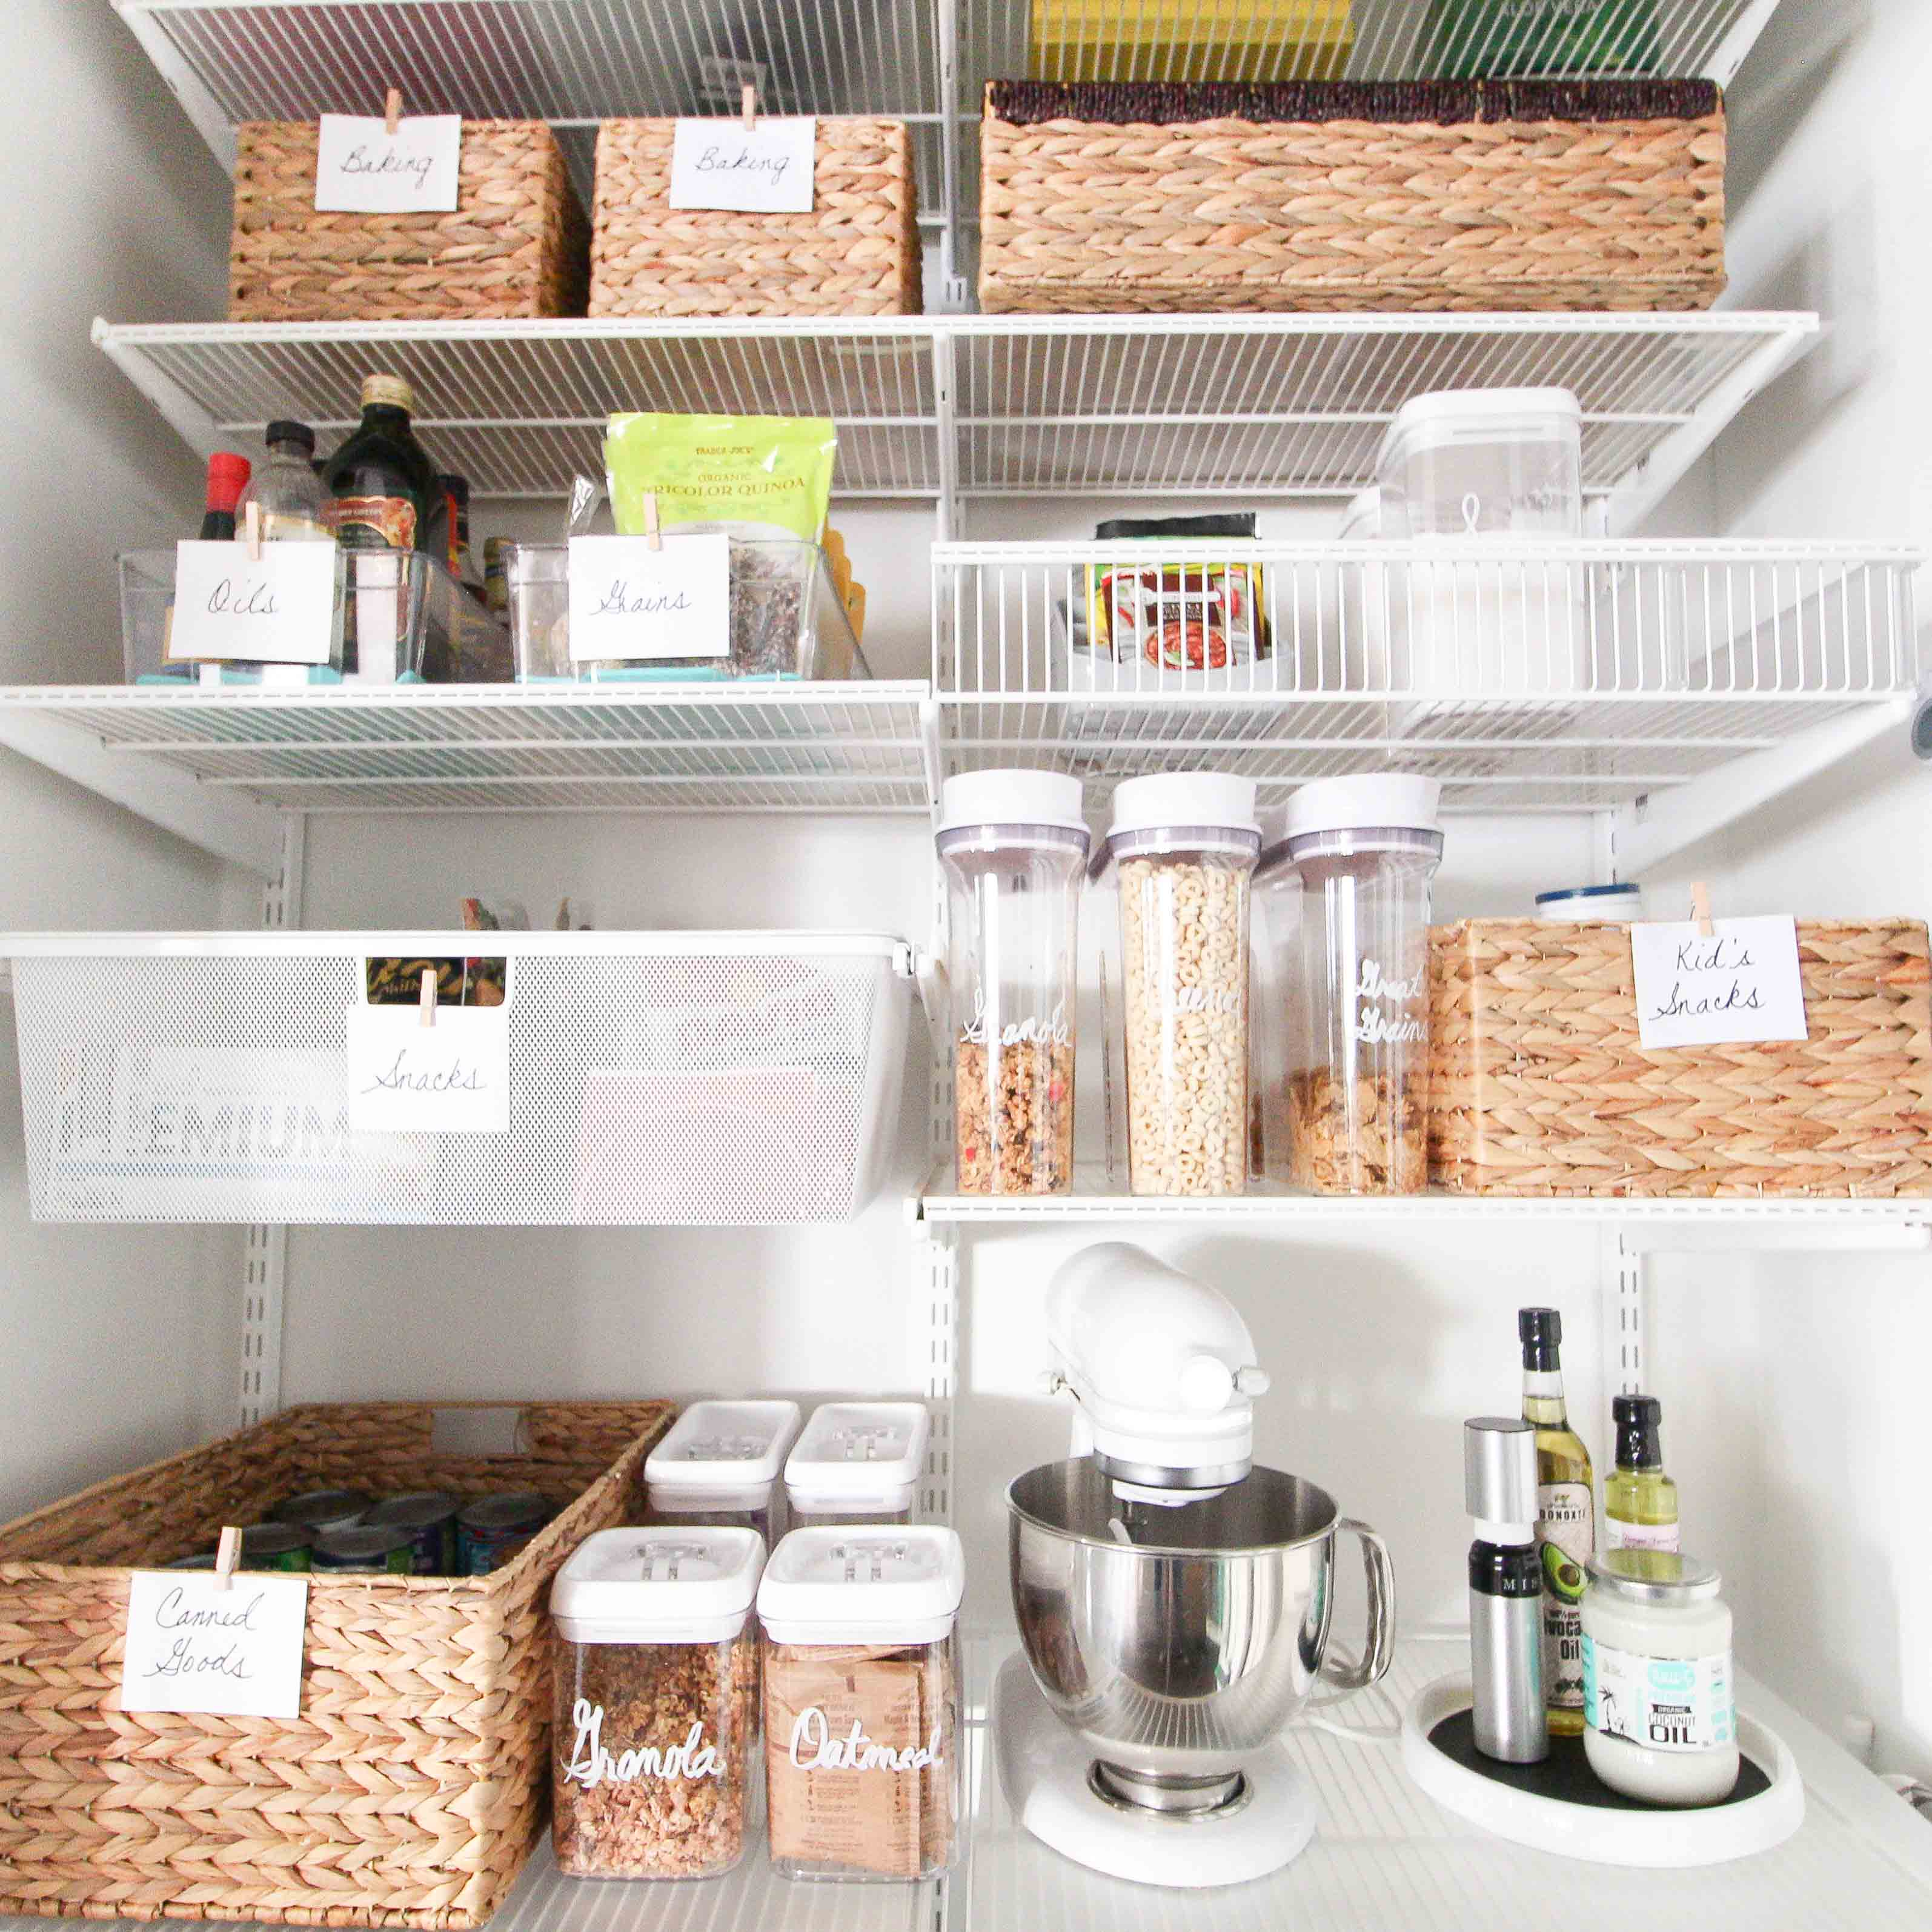 An organized pantry with wicker baskets